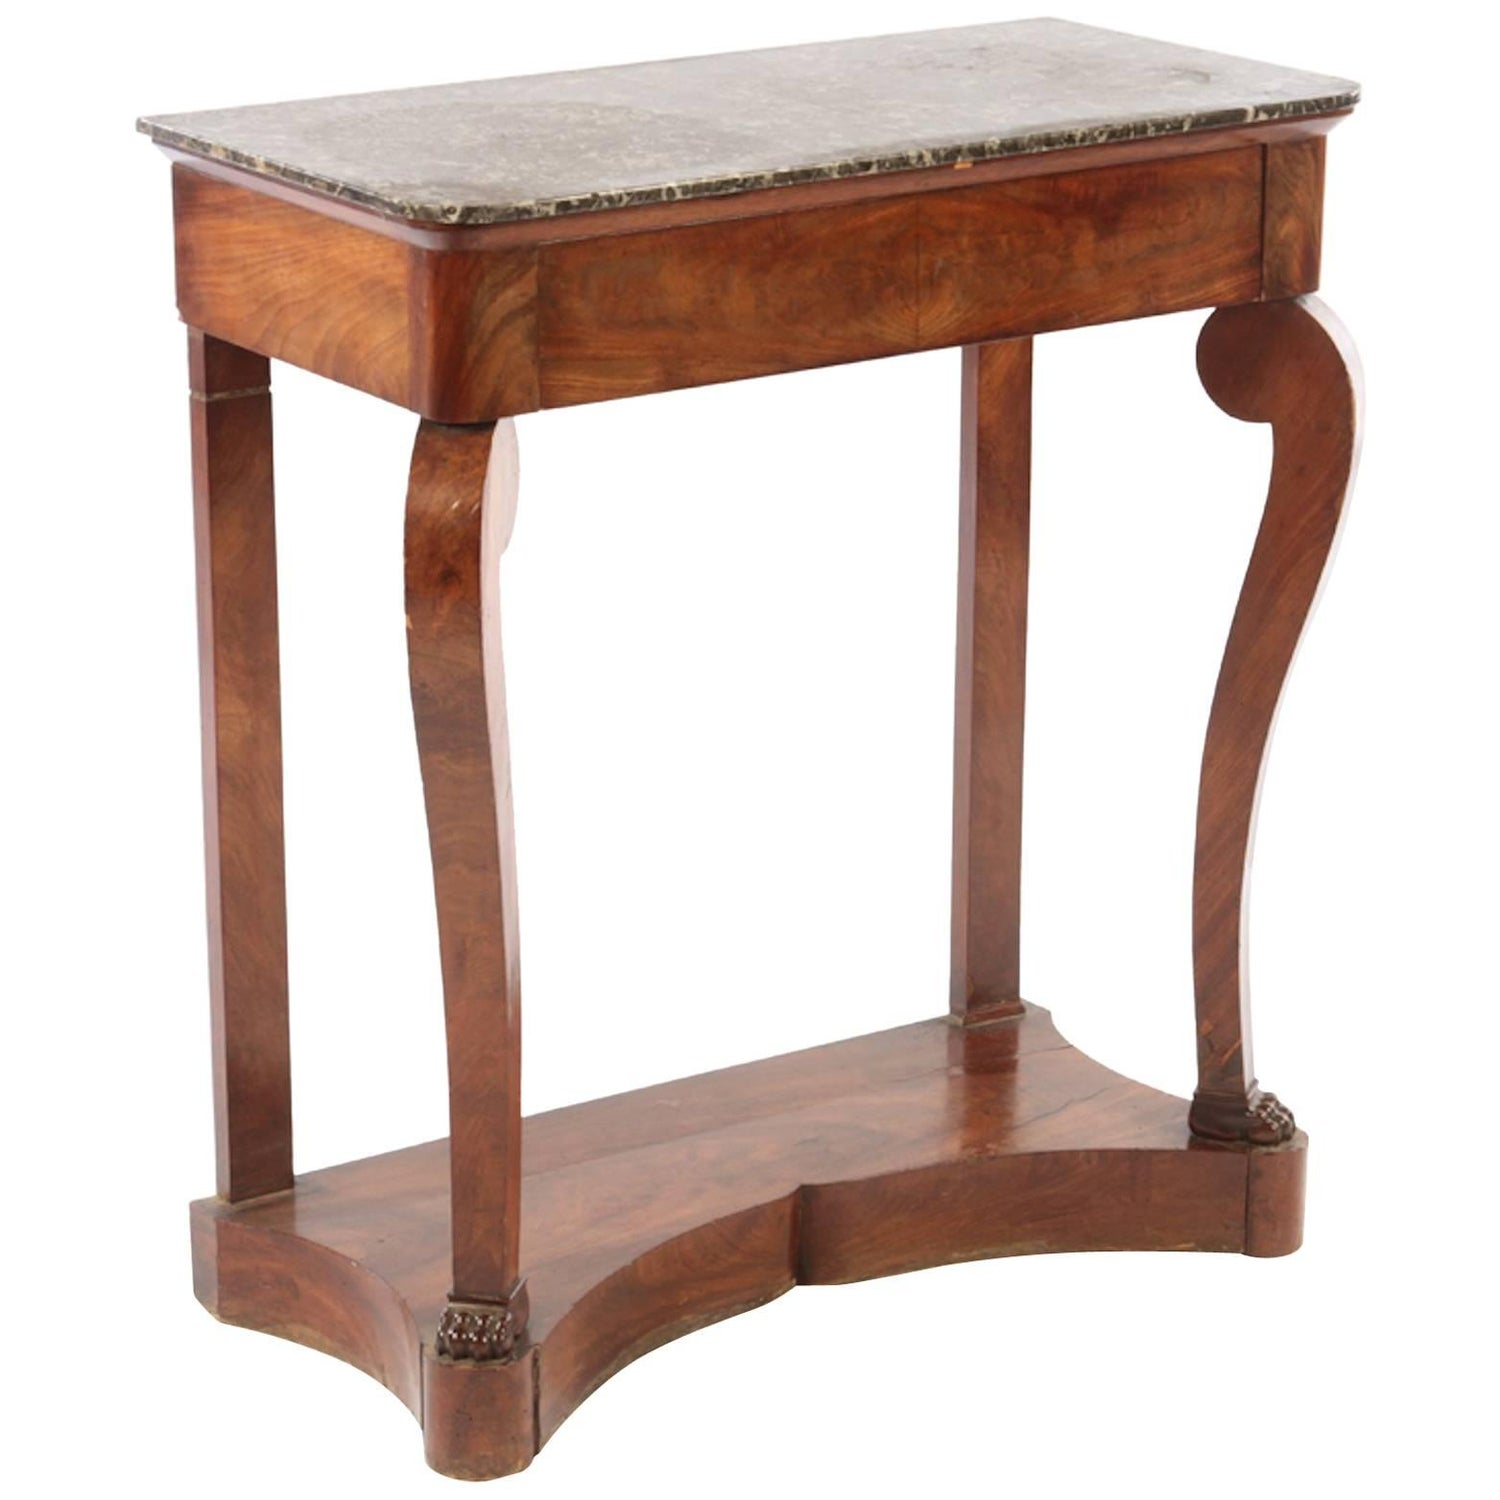 Louis philippe console tables 19 for sale at 1stdibs french louis philippe console table geotapseo Images